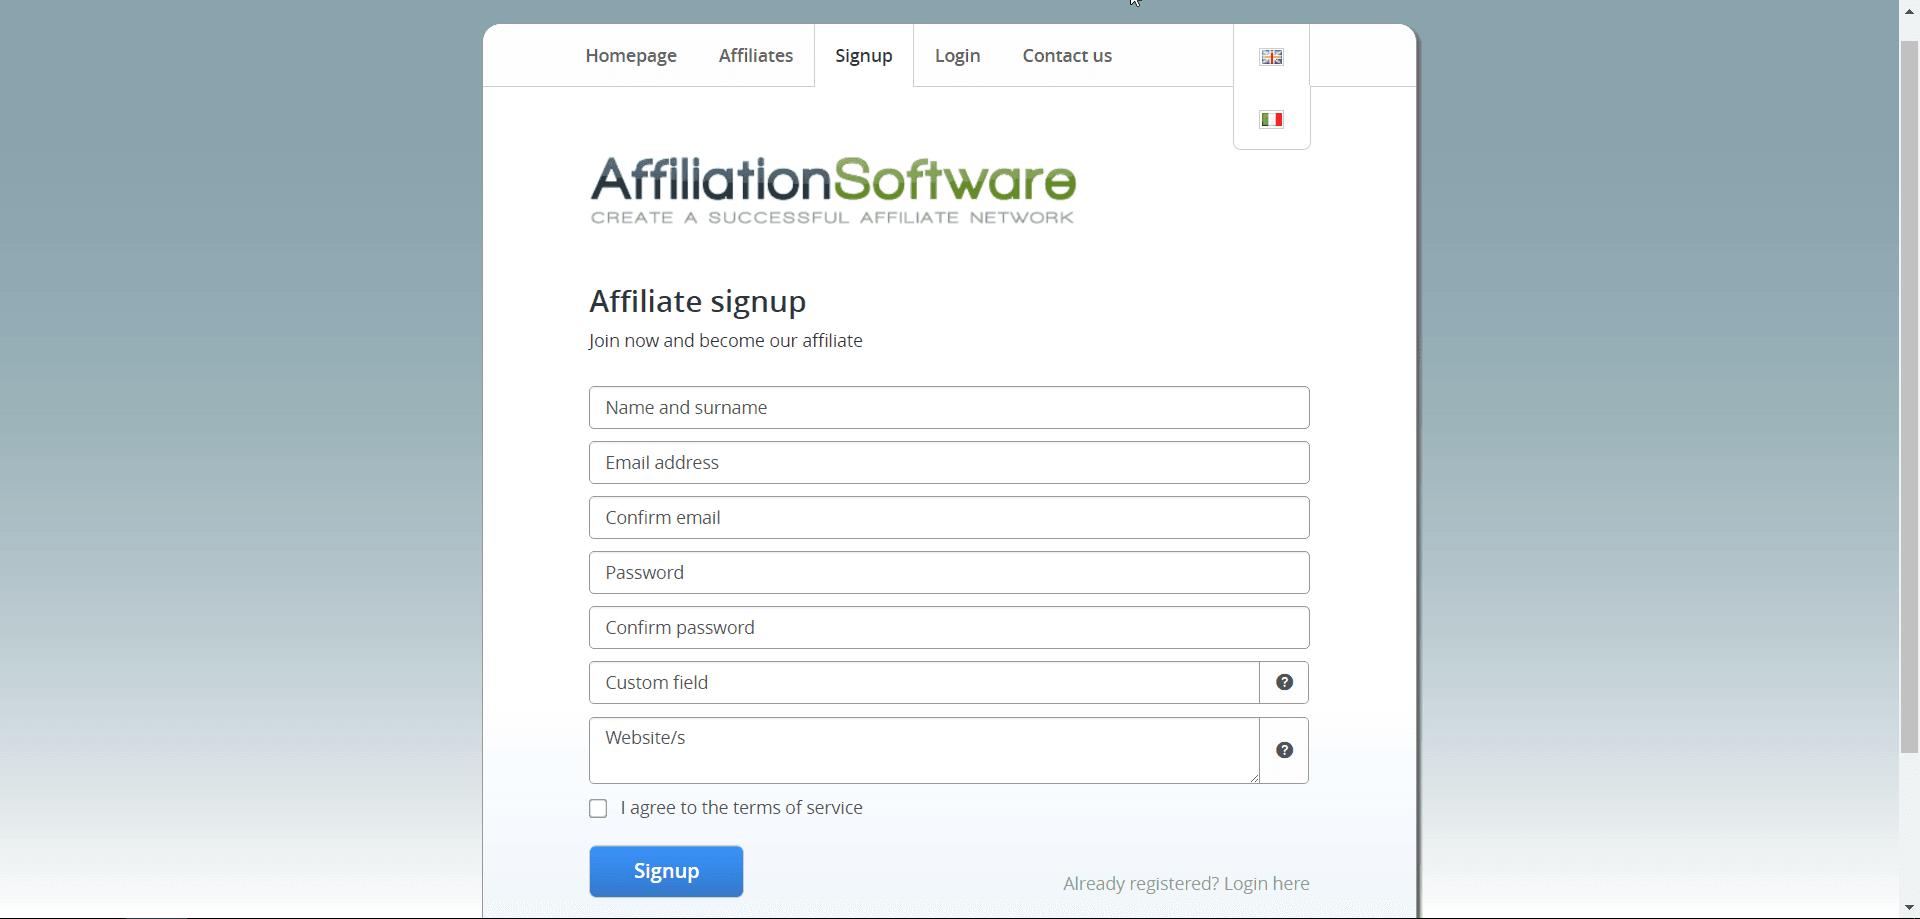 Free Affiliate Software - AffiliationSoftware com